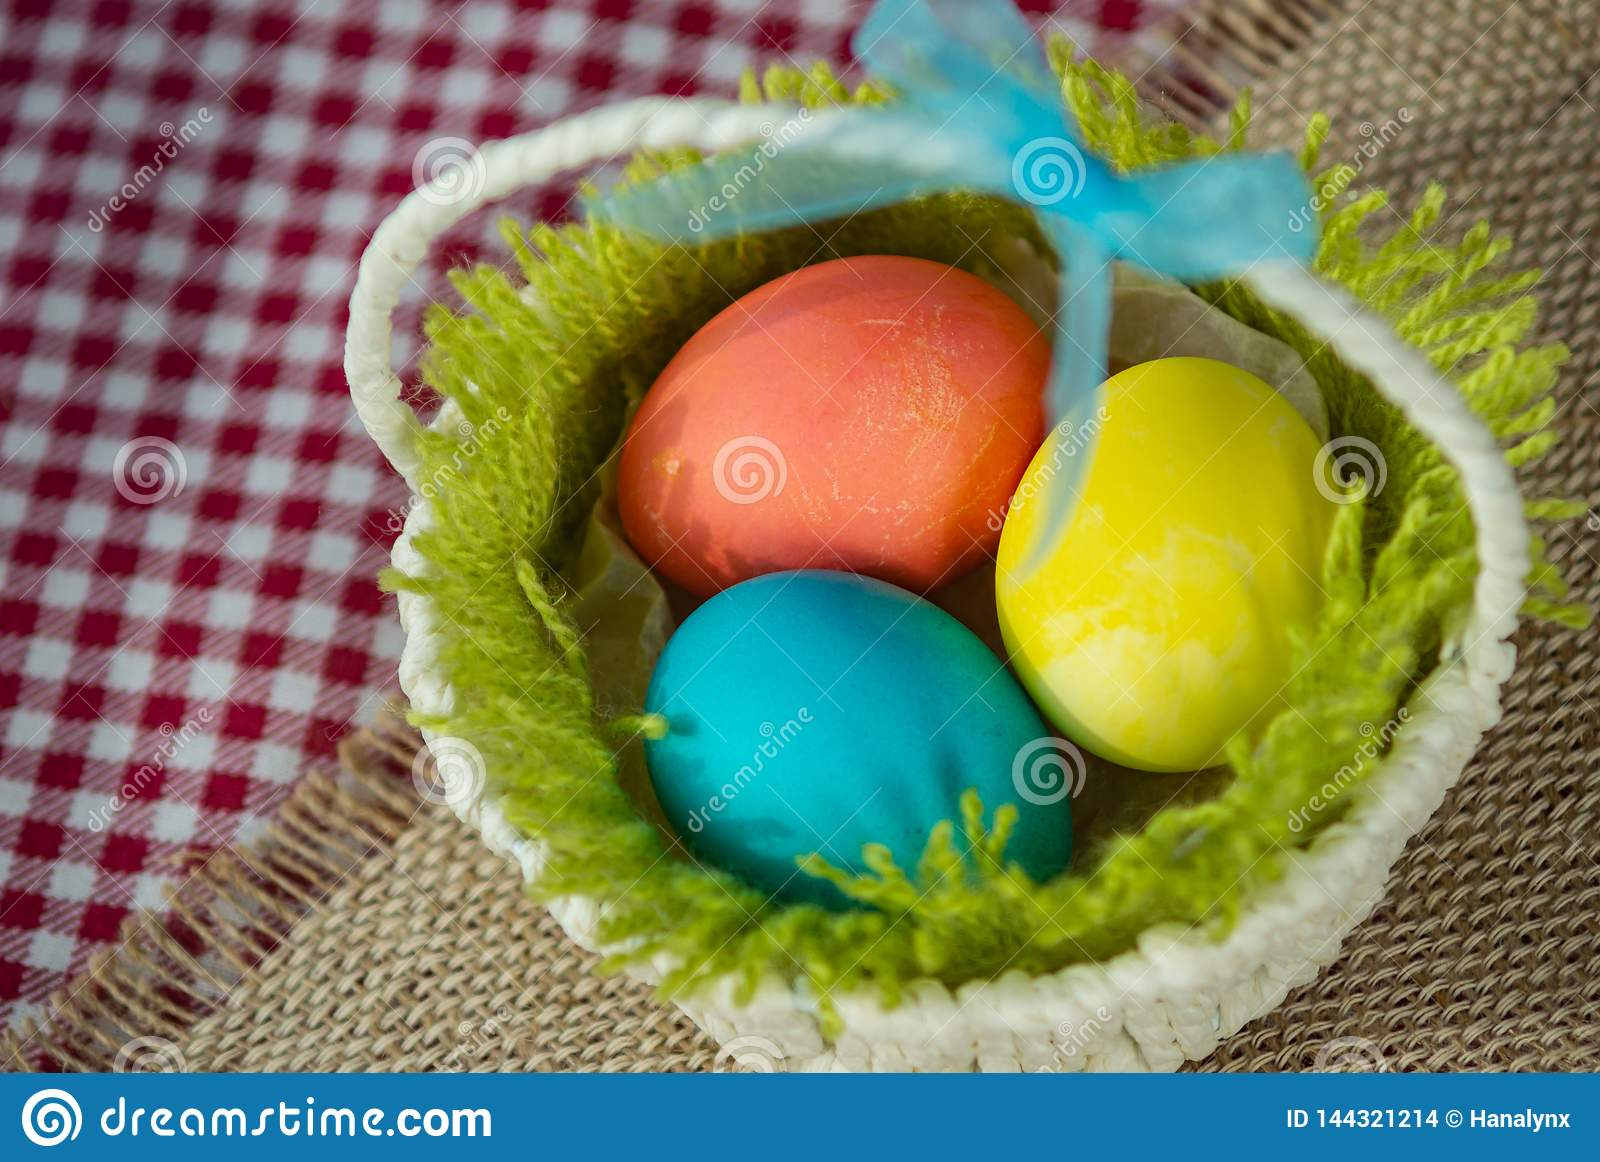 Easter colored eggs in a basket on a canvas napkin and checkered tablecloth